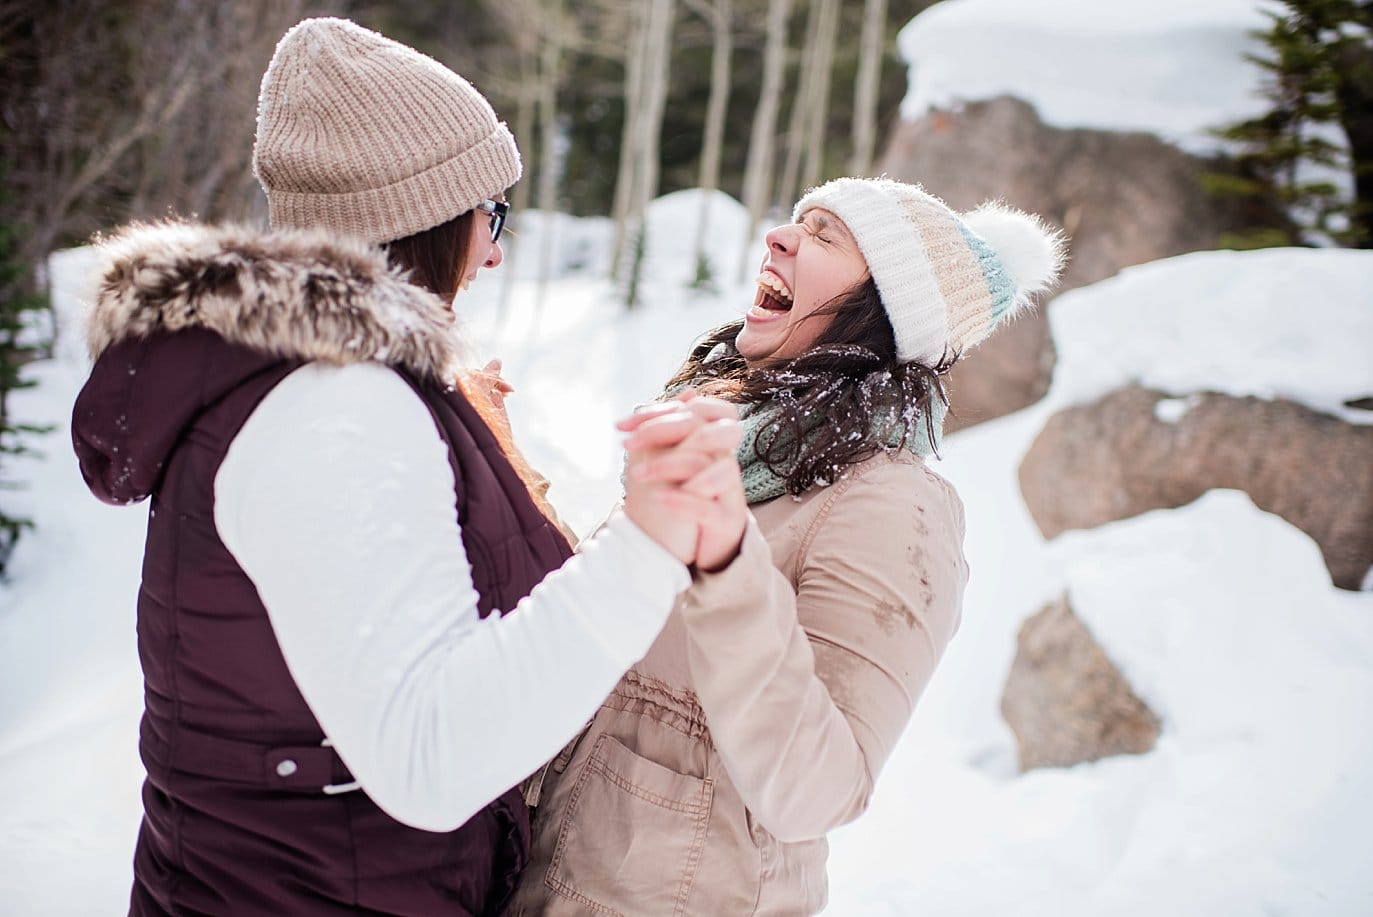 queer couple laughing in snow Alberta Falls Rocky Mountain National Park winter hiking engagement by Denver engagement photographer Jennie Crate, Photographer